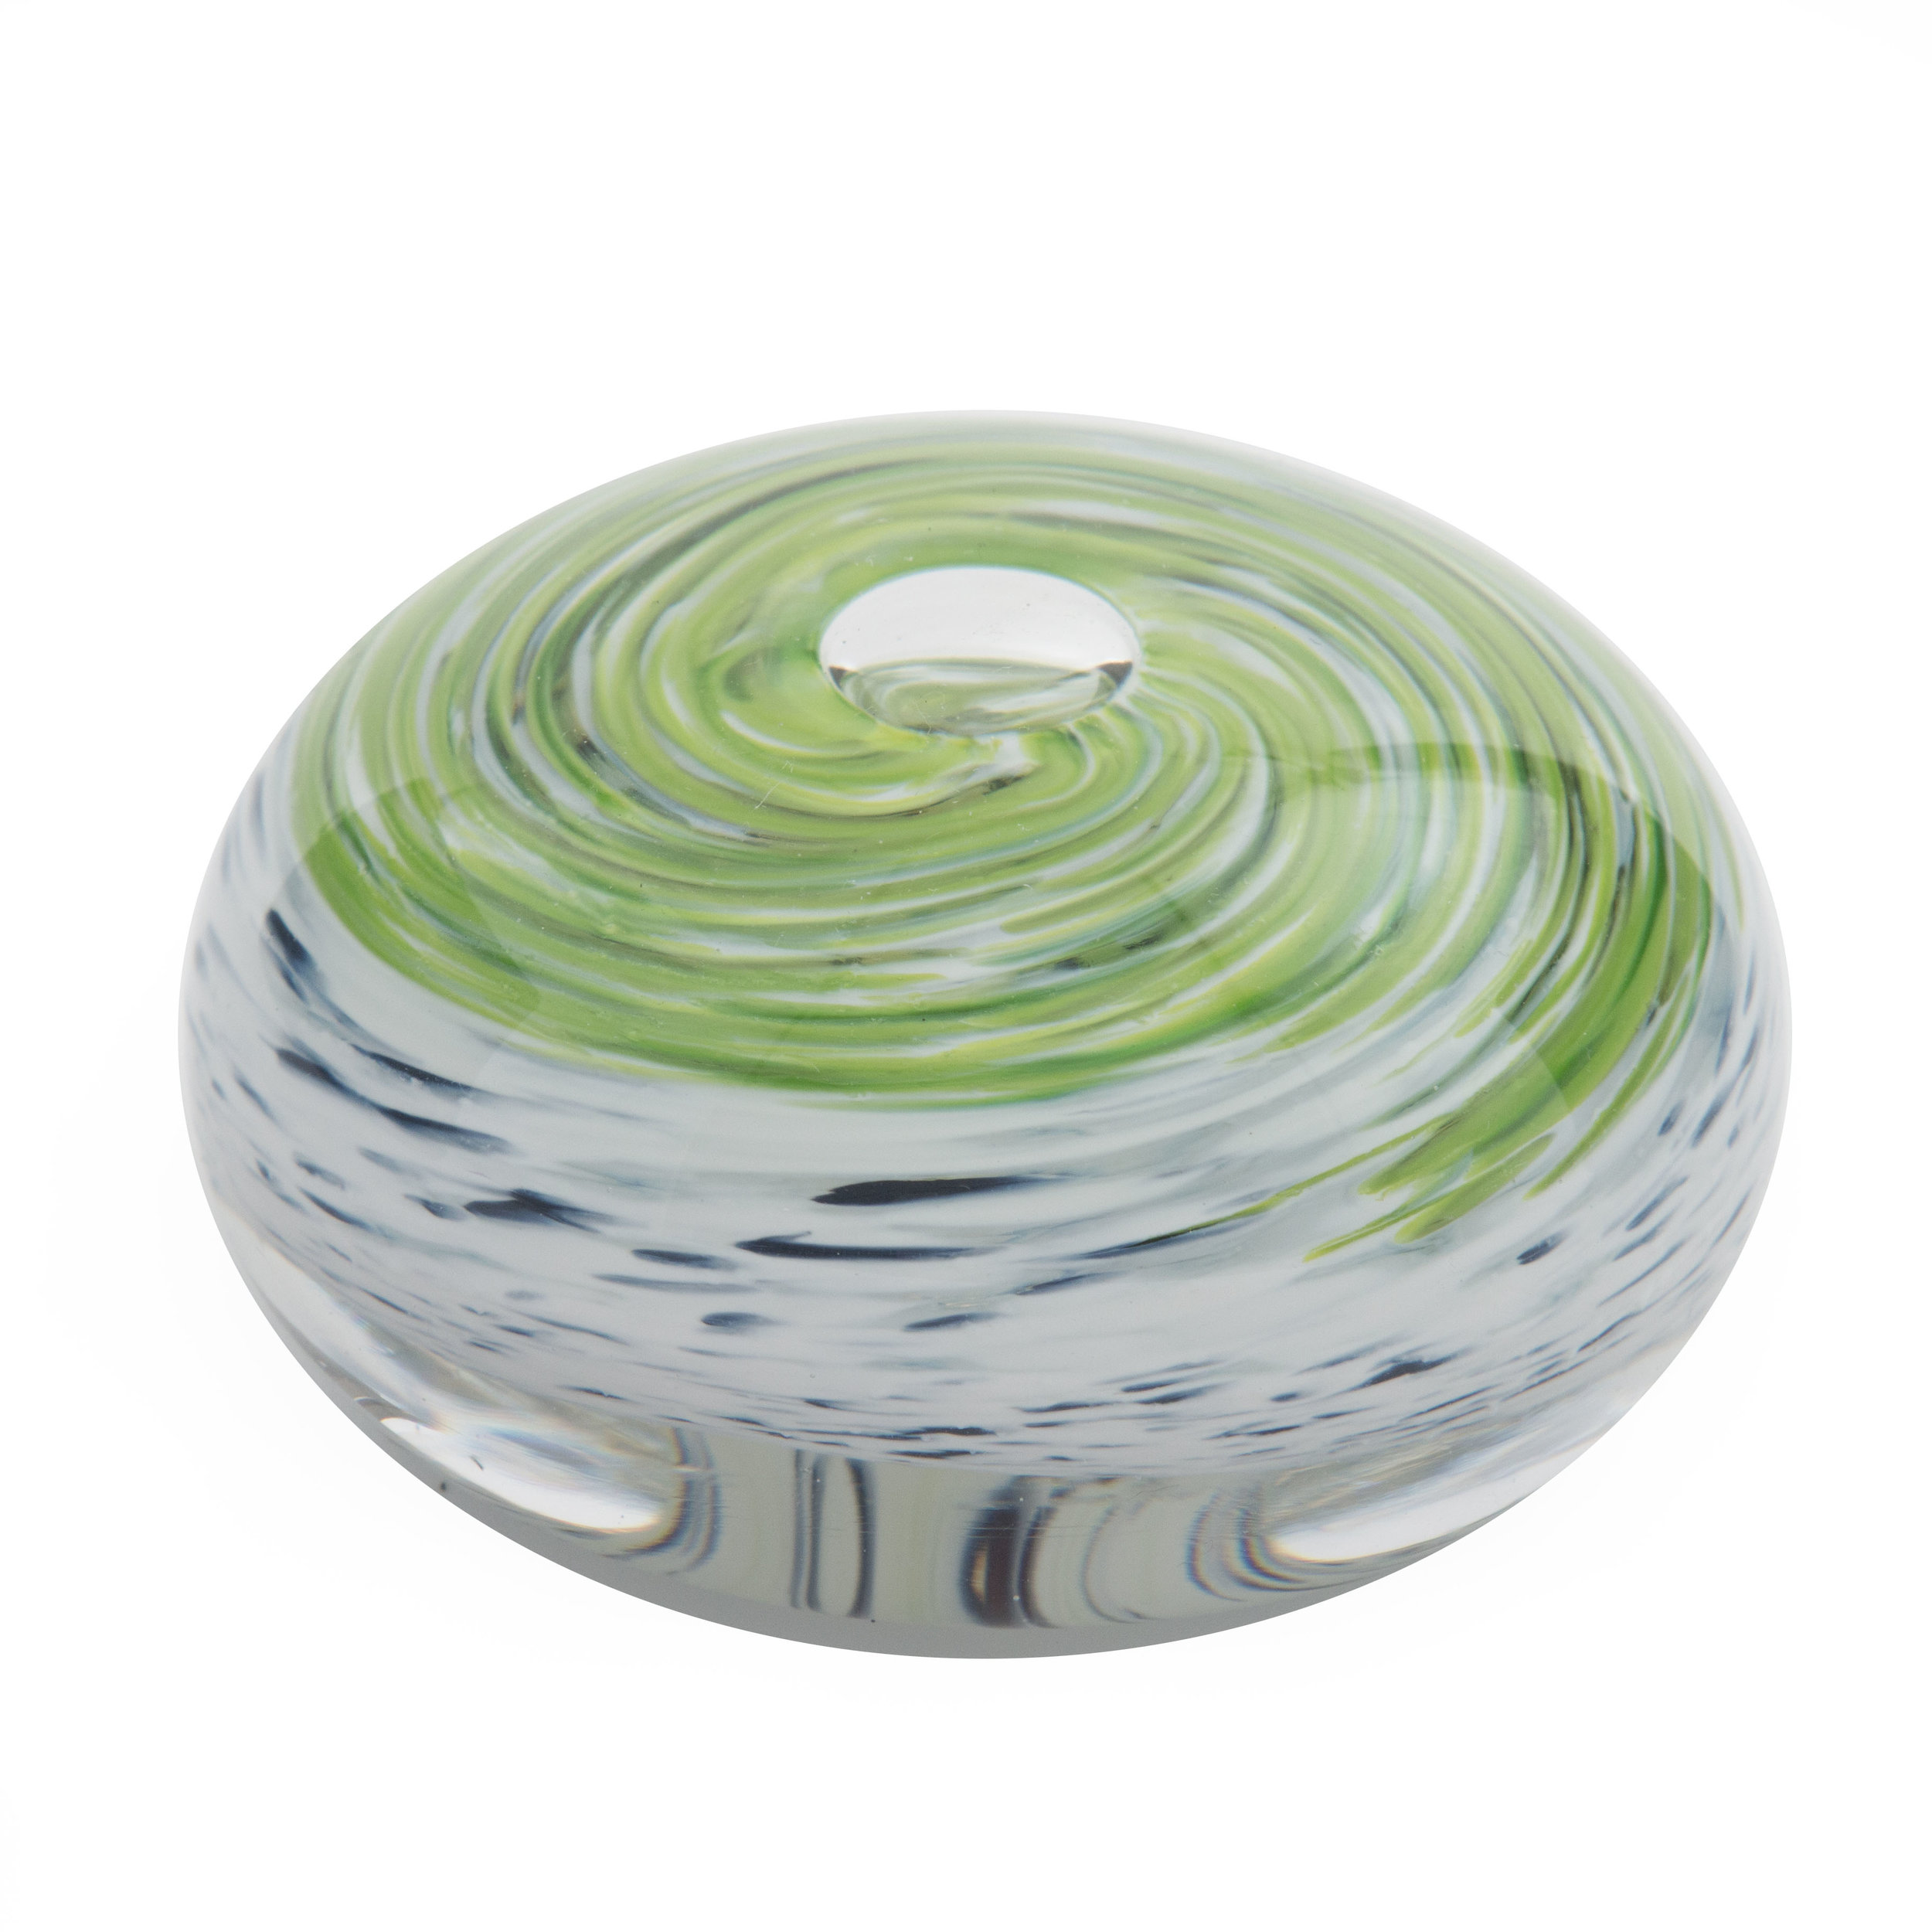 Holdman-studios-blown-glass-experiences-paperweight-example-3.jpg